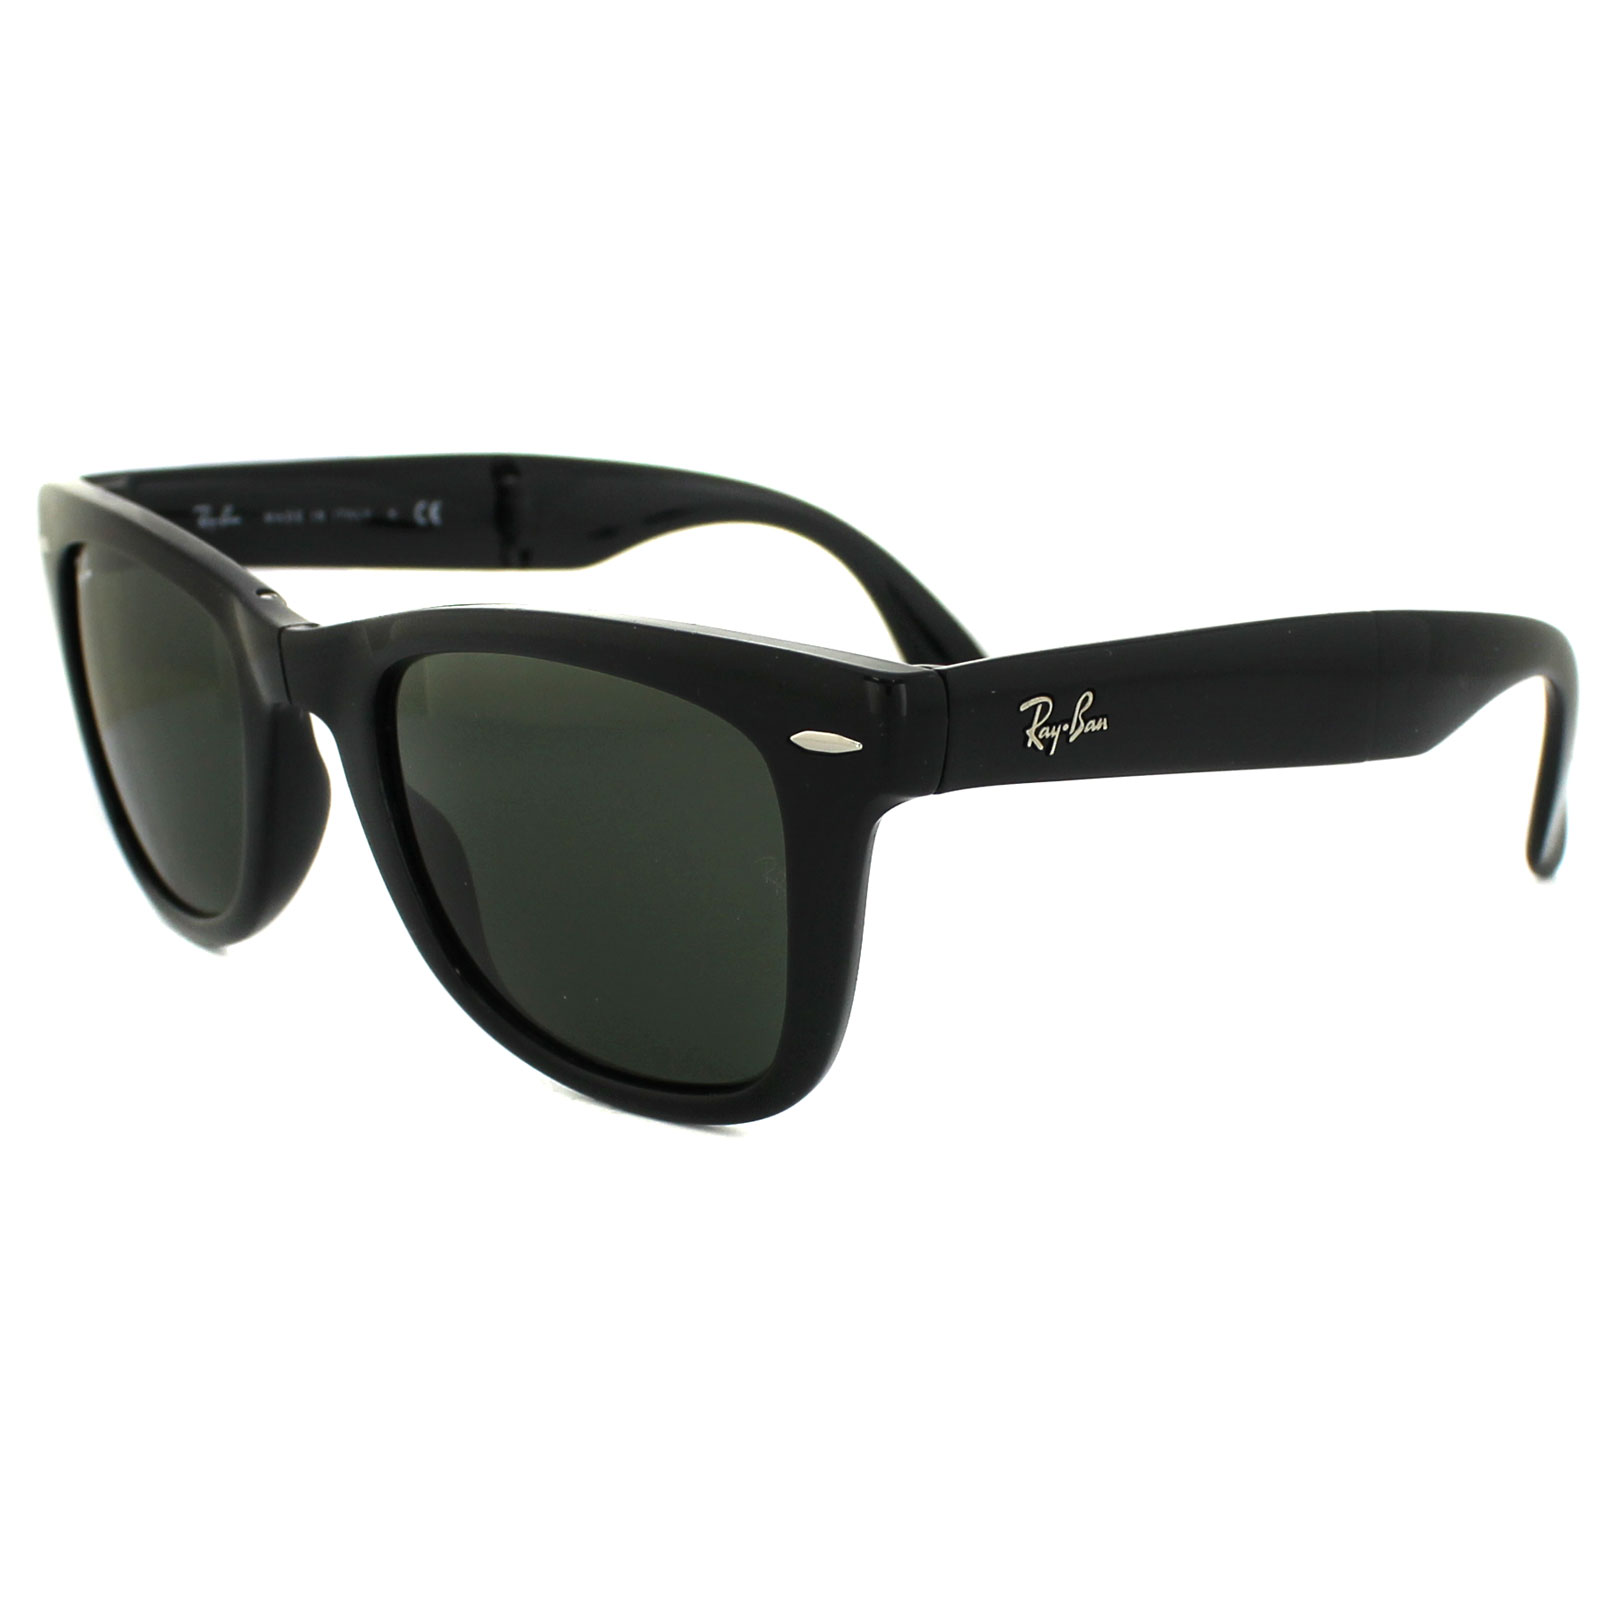 ea702a9419b Sentinel Ray-Ban Sunglasses Folding Wayfarer 4105 Black Green 601 Medium  50mm